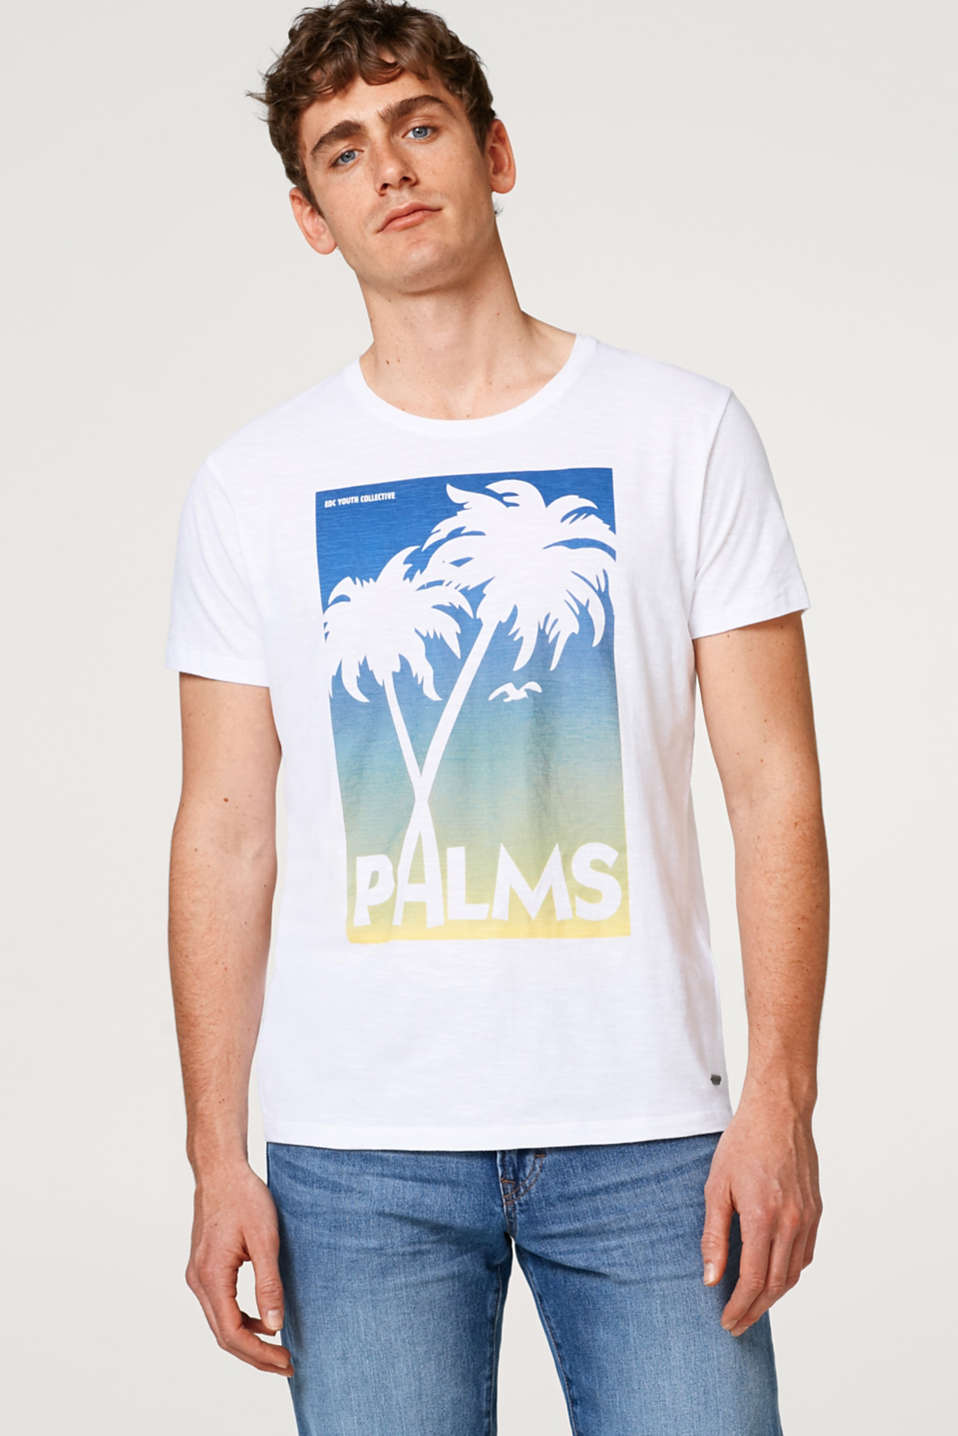 edc - T-shirt with a palm-tree print, made of slub jersey